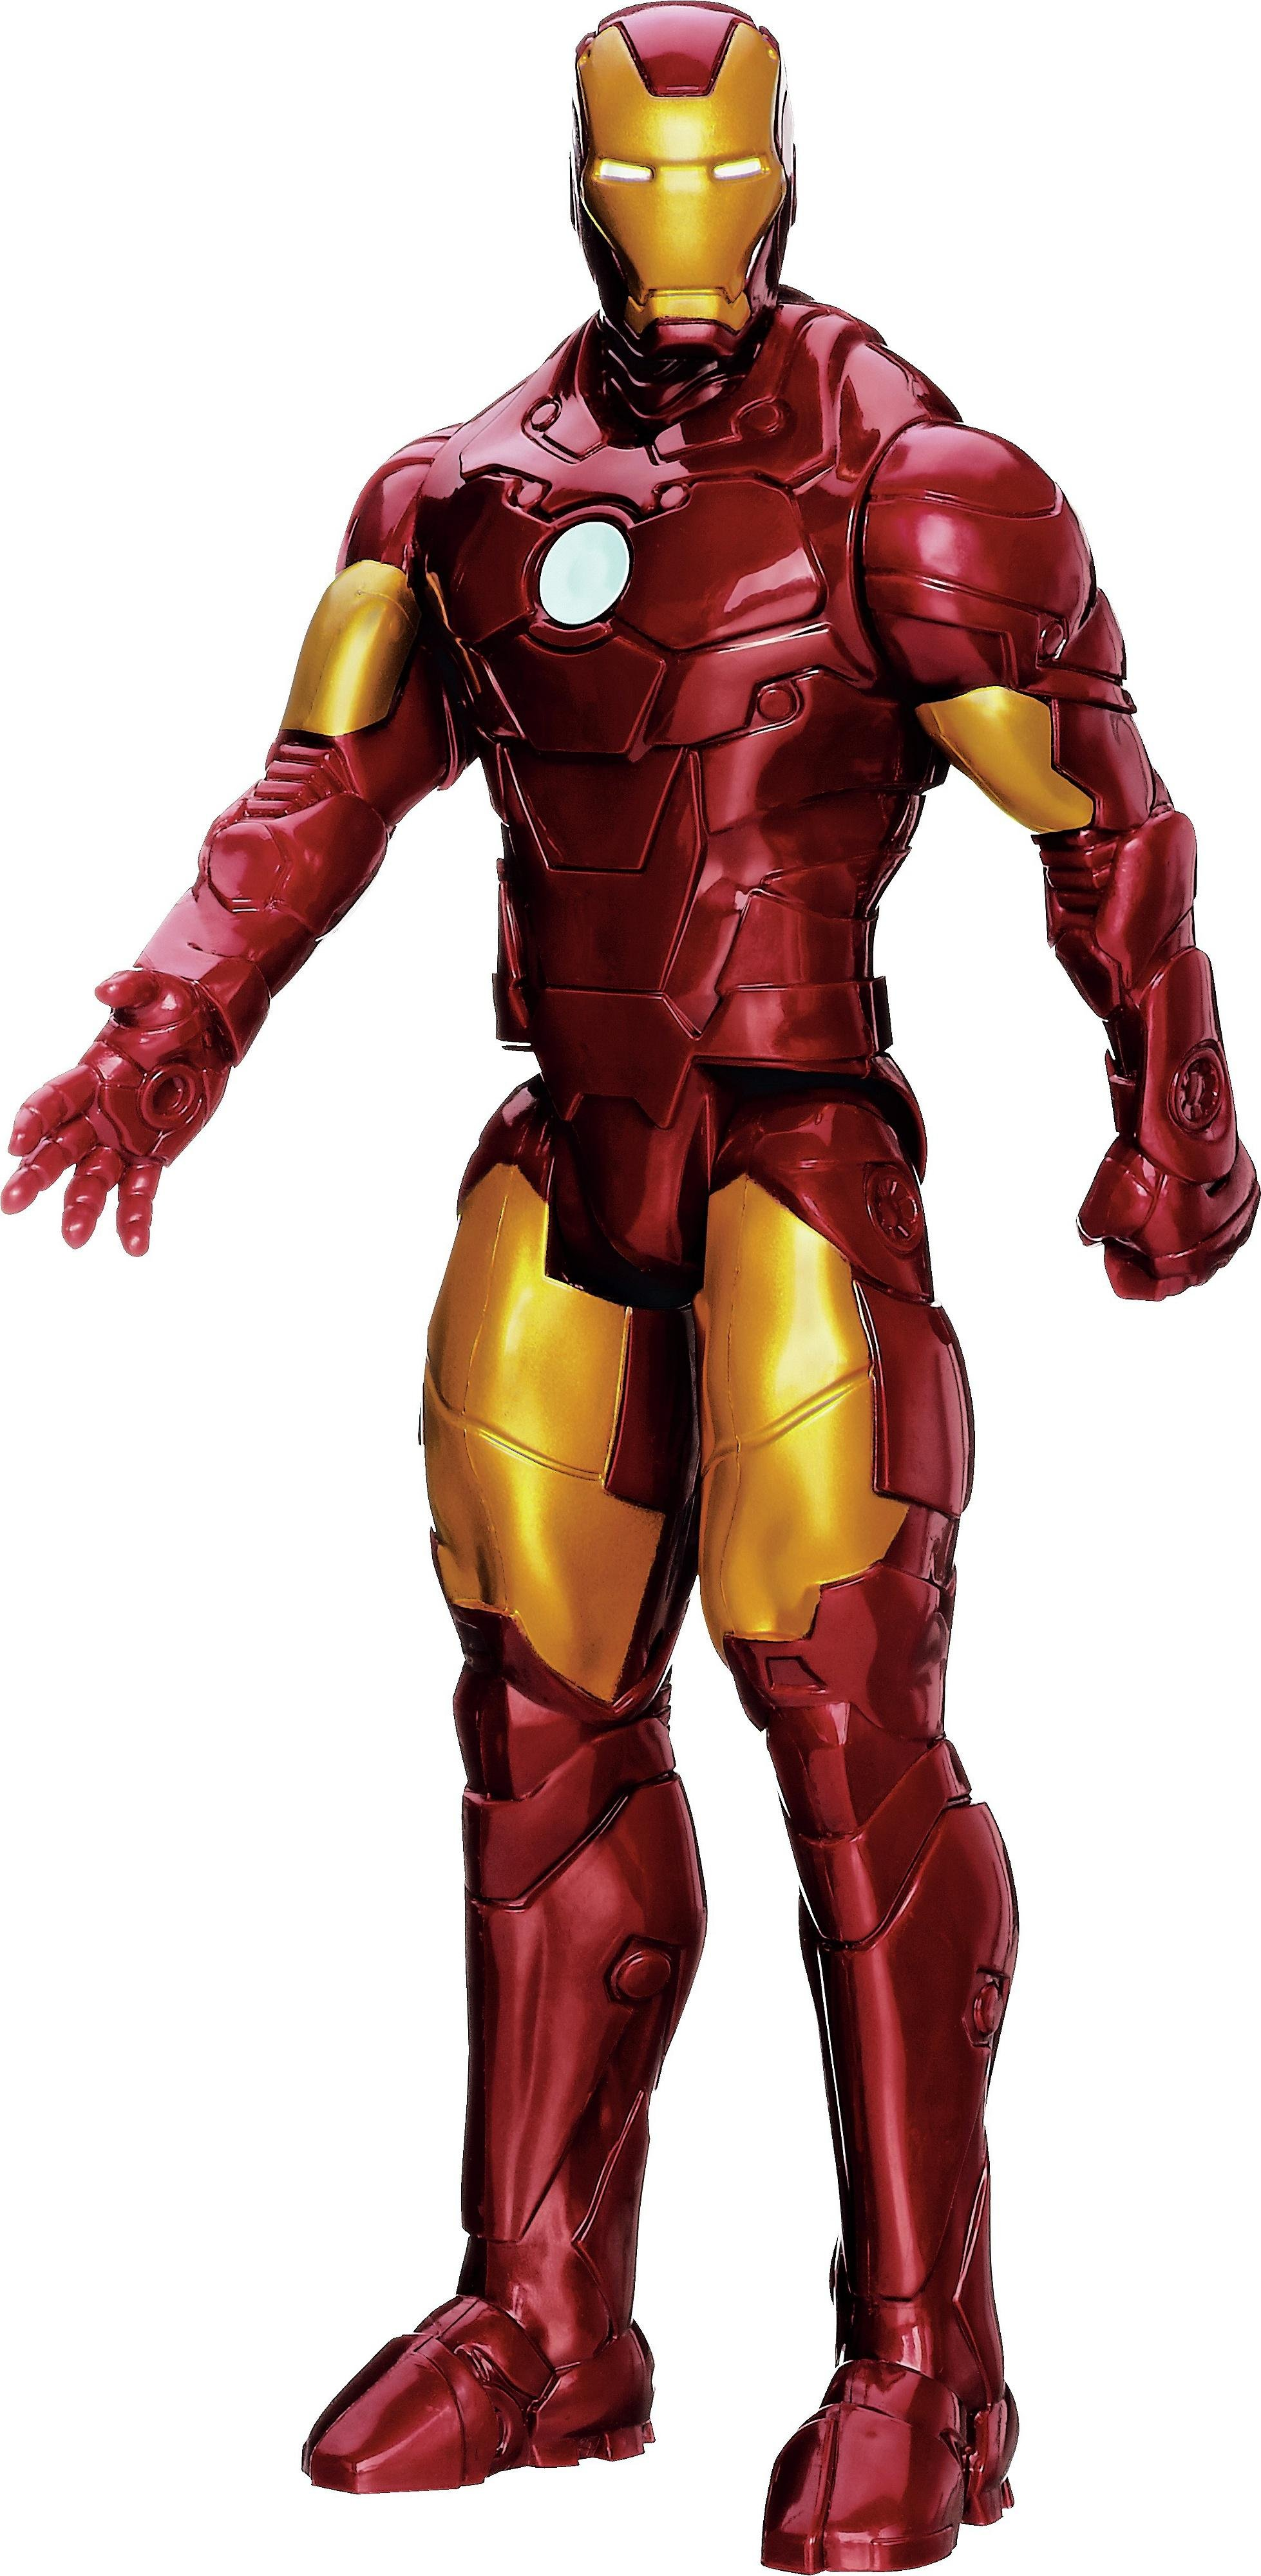 Image of Avengers - Hero - Series Action Figures.